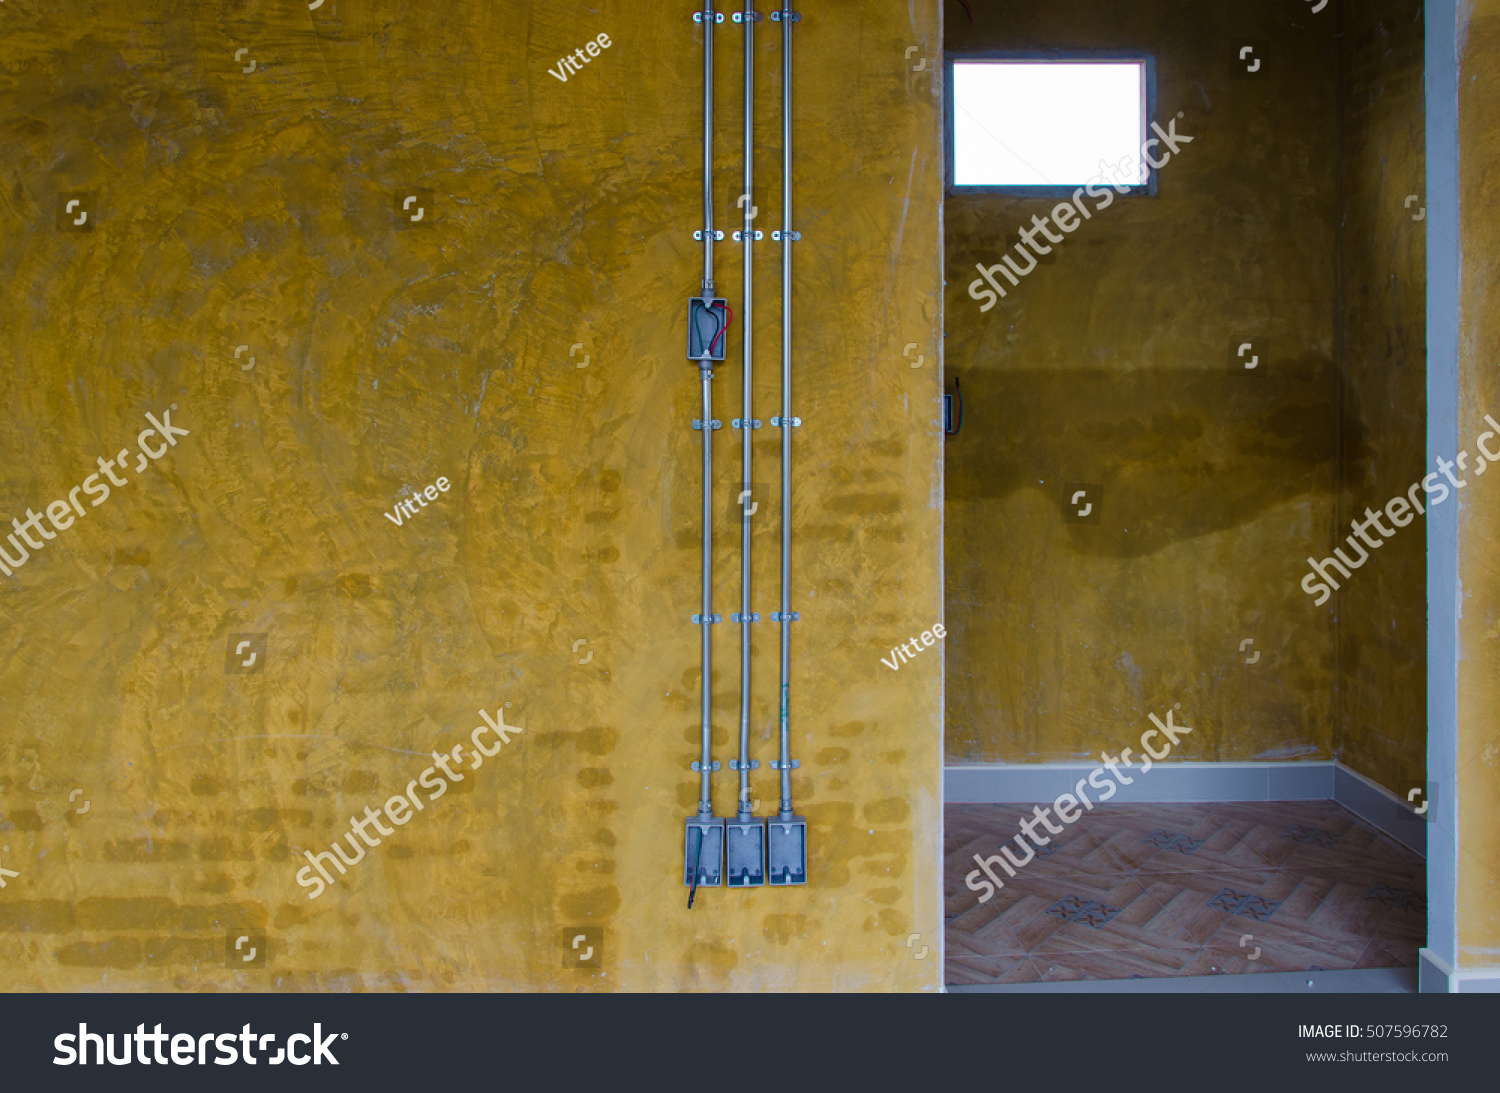 hight resolution of three steel tube wiring on yellow loft wall